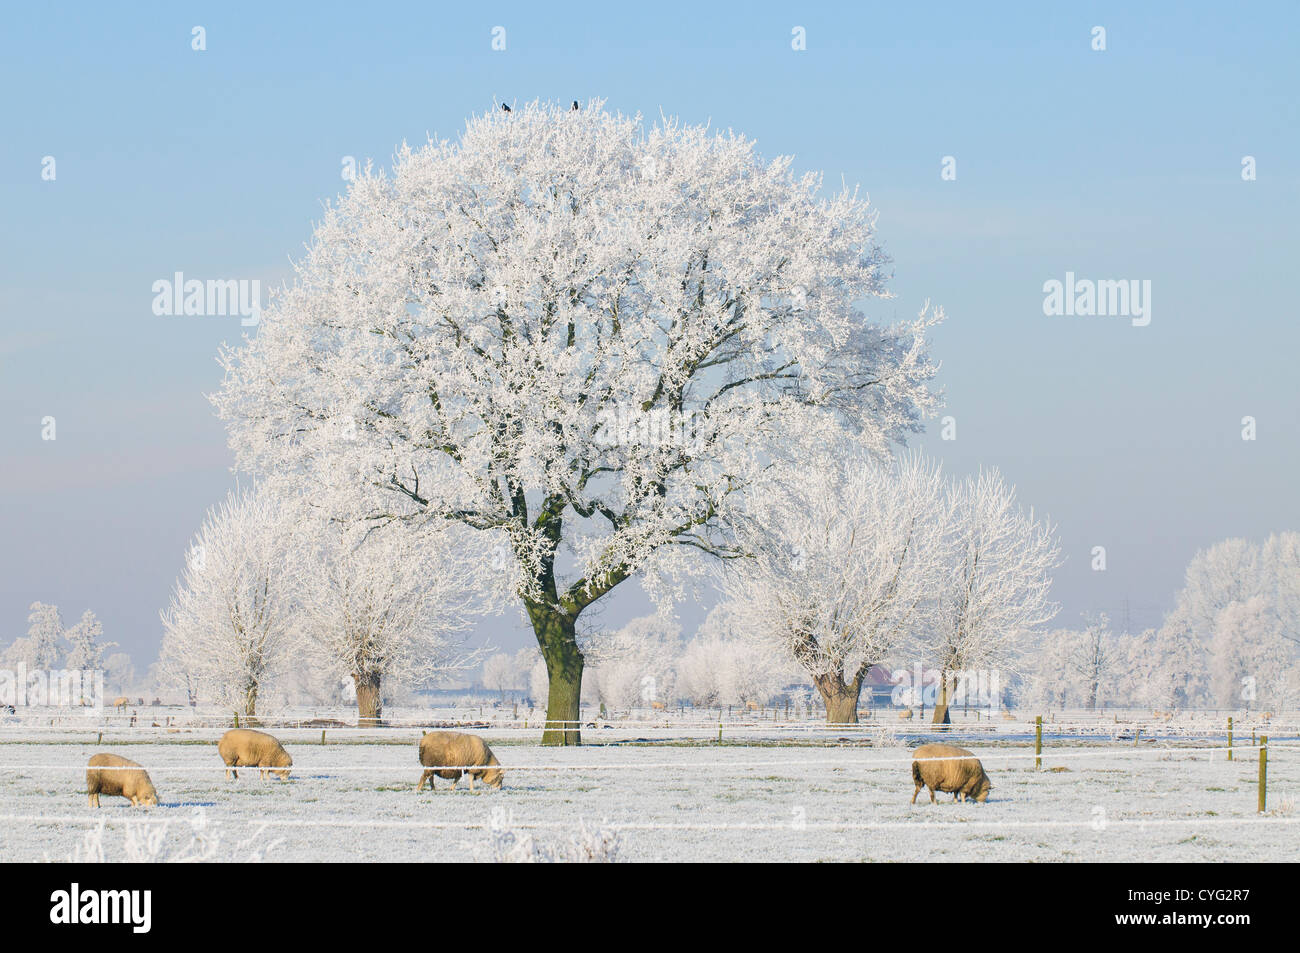 Winter landscape with a tree covered in frost and sheep in a field Stock Photo